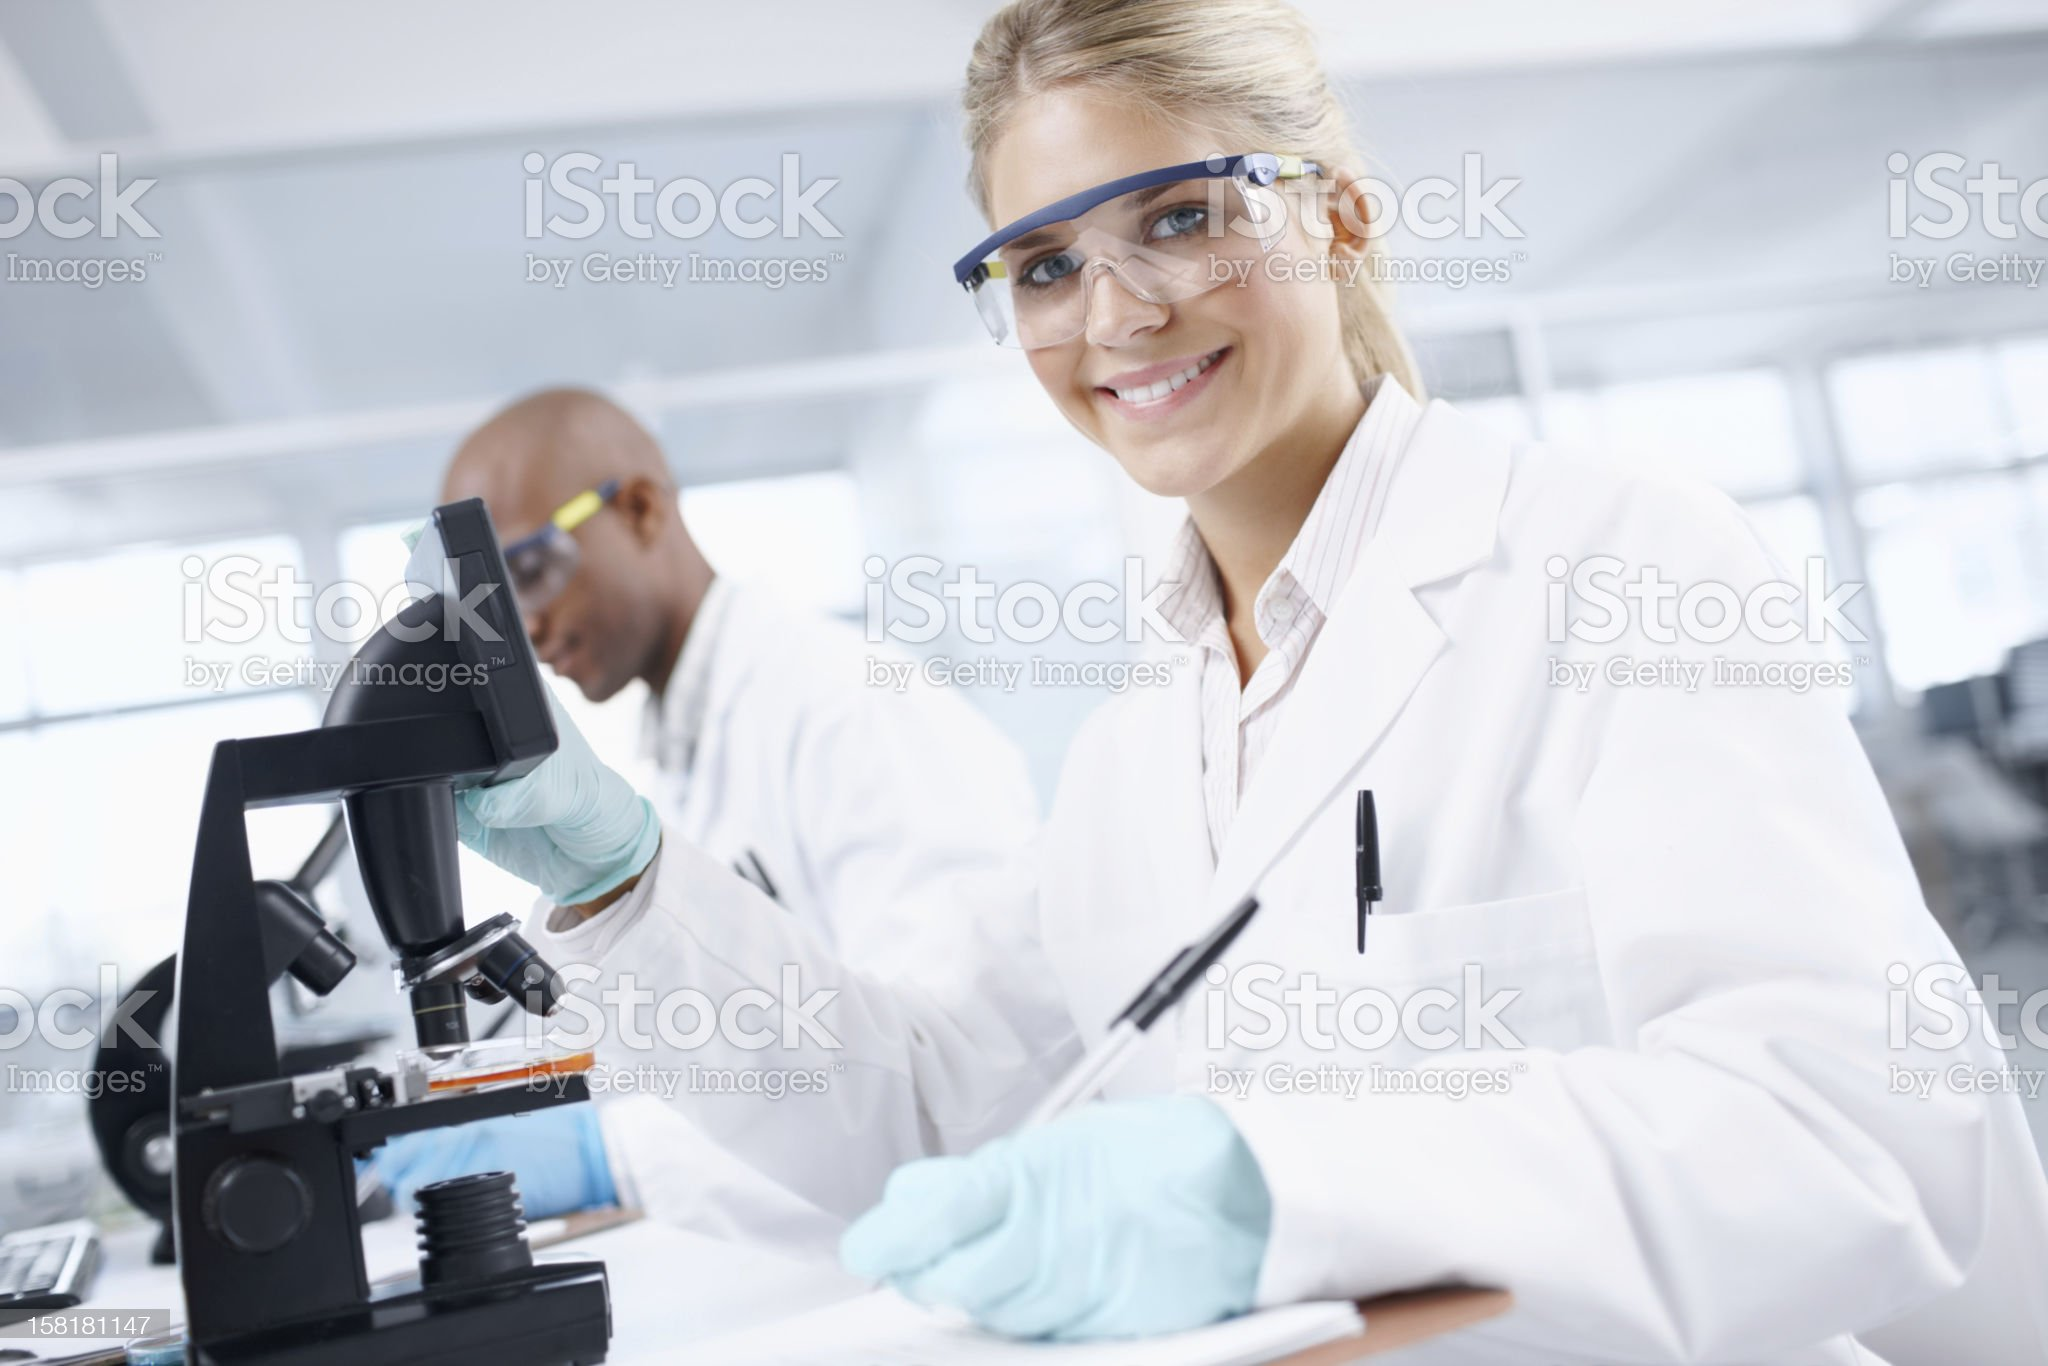 Doing research to gain knowledge royalty-free stock photo